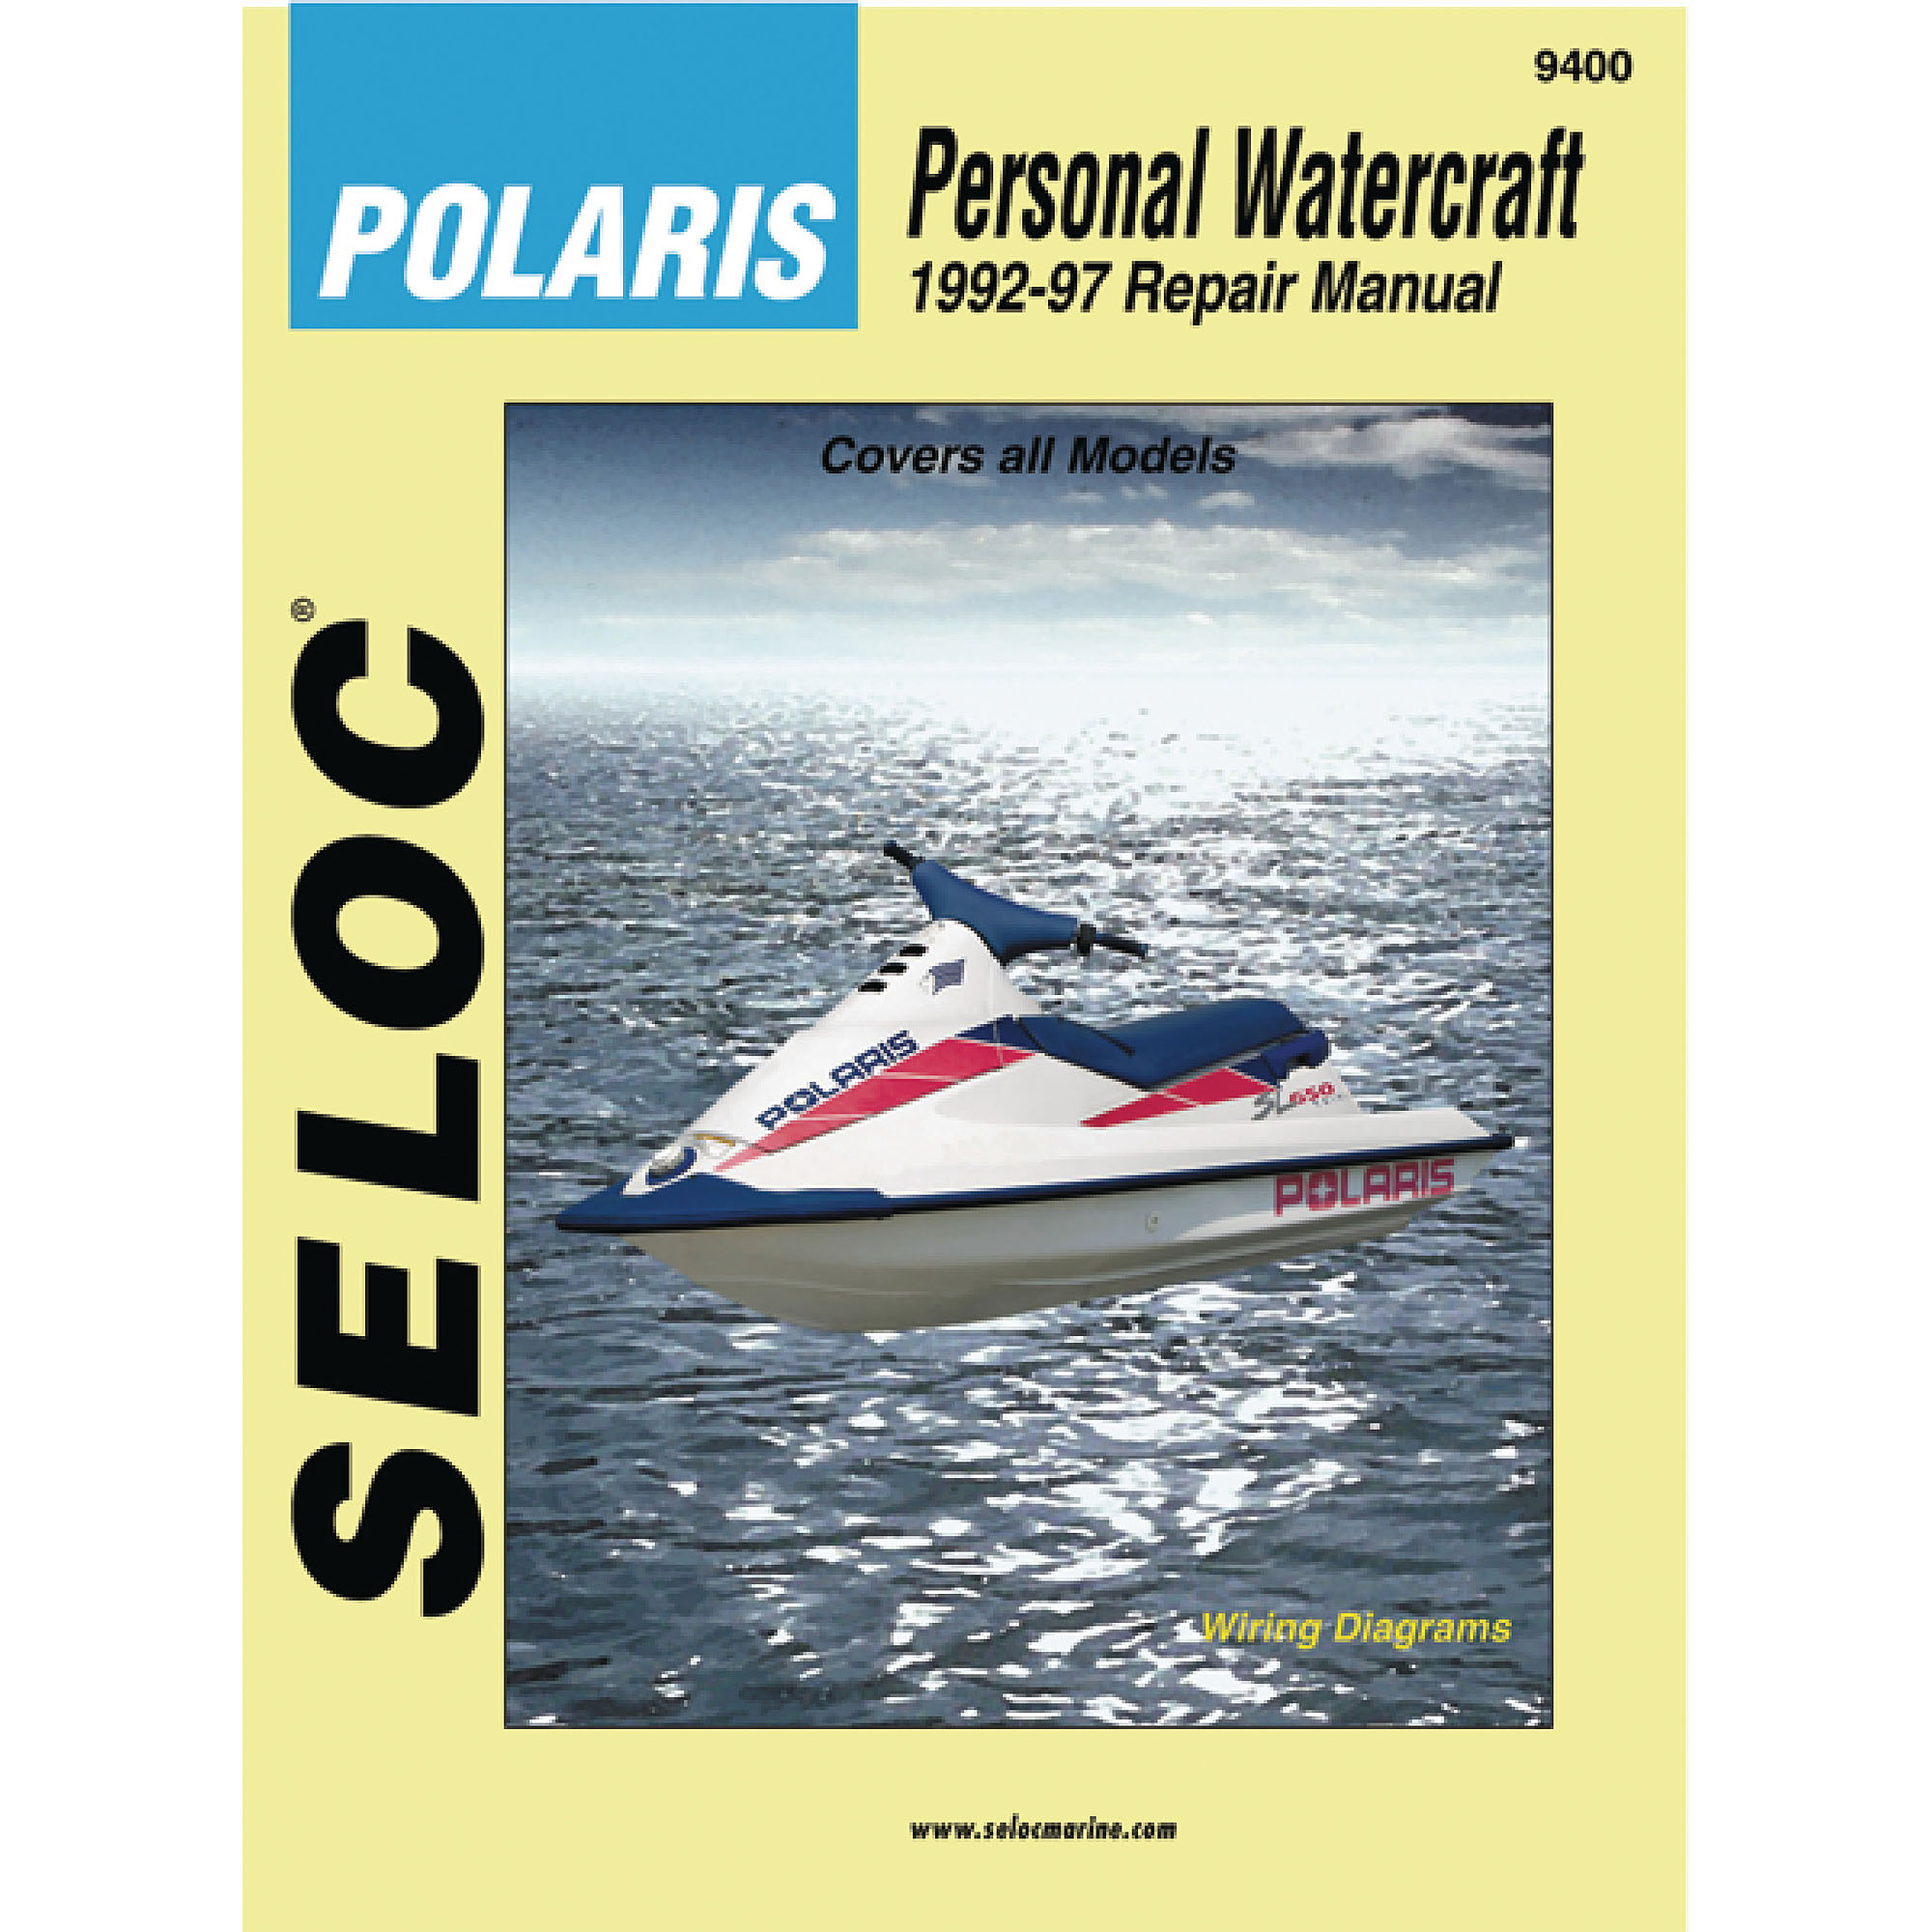 Seloc Marine Manual for Polaris Personal Watercraft 1992-97 - Walmart.com